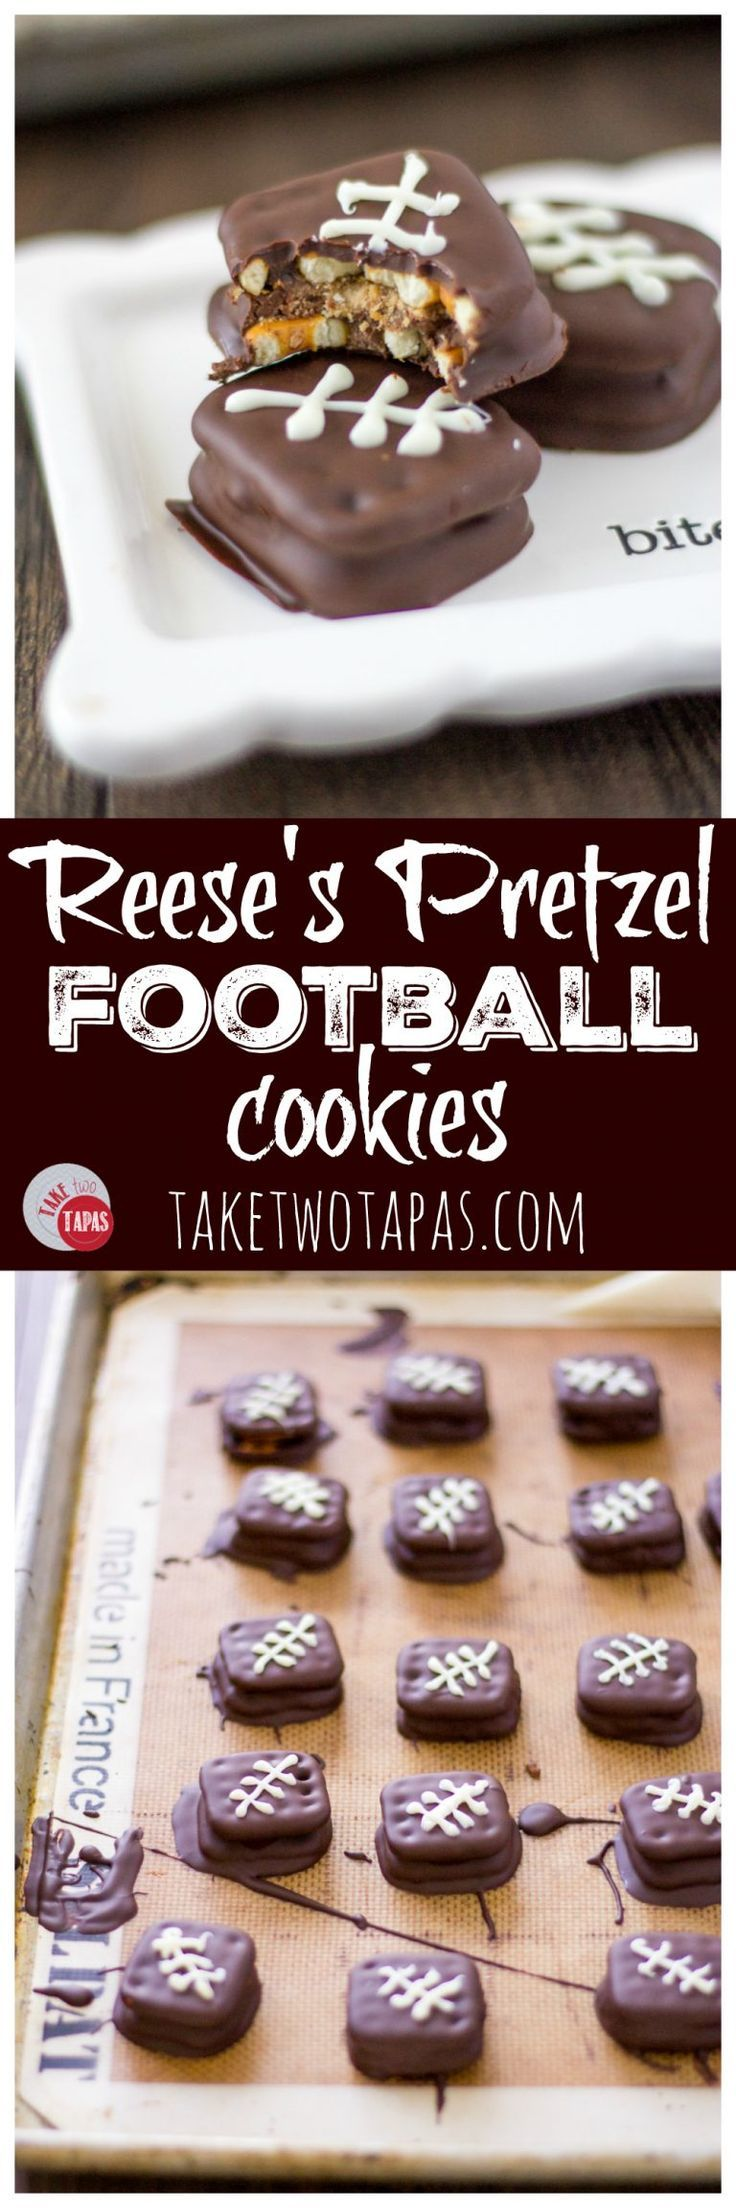 A salty, crispy pretzel sandwich stuffed with Reese's cups, dipped in chocolate and decorated with laces make the perfect Reese's Pretzel Football Cookies for your Game Day Celebration! Recipe   Take Two Tapas